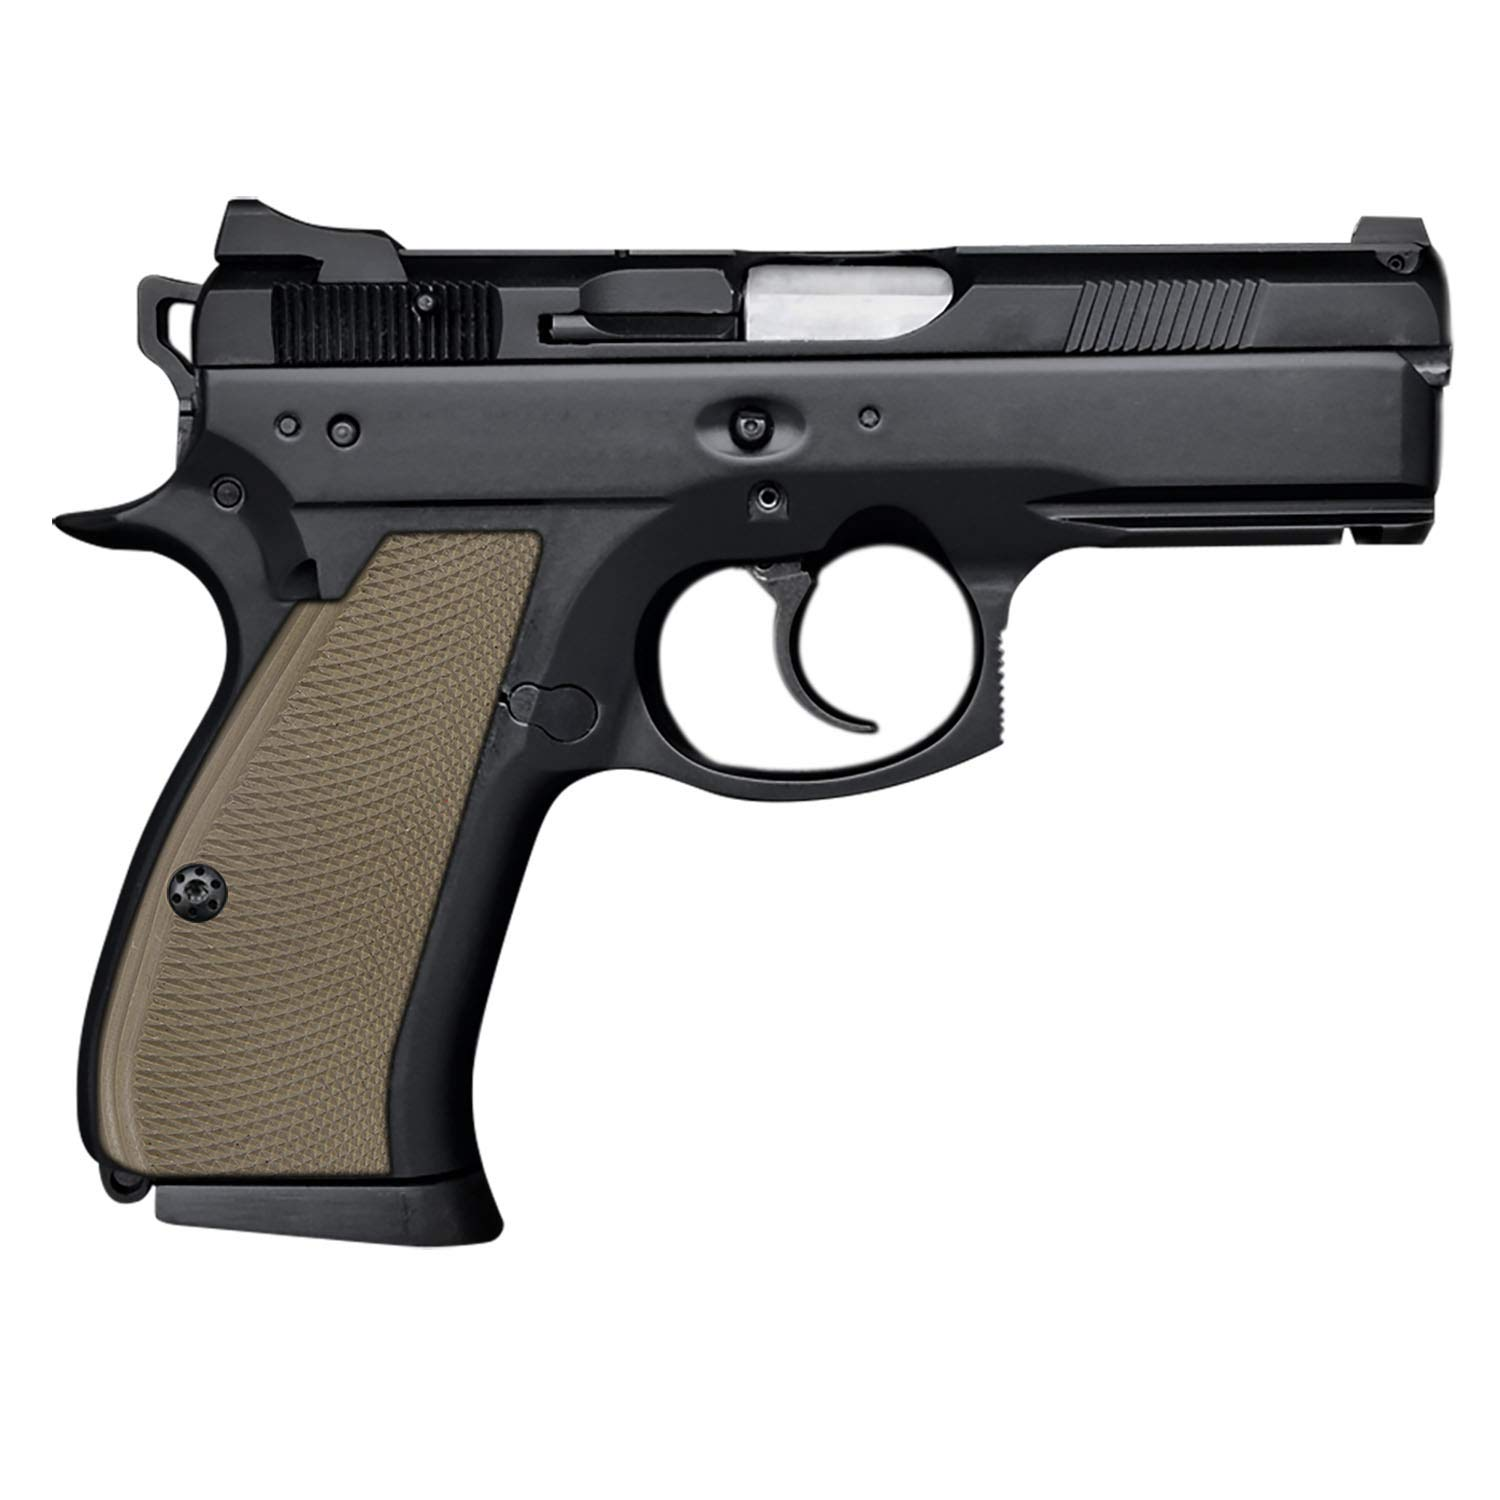 Cool Hand G10 Grips for CZ 75/85 Compact, Free Screws Included, Dark Earth, SPC-PN-32 by Cool Hand